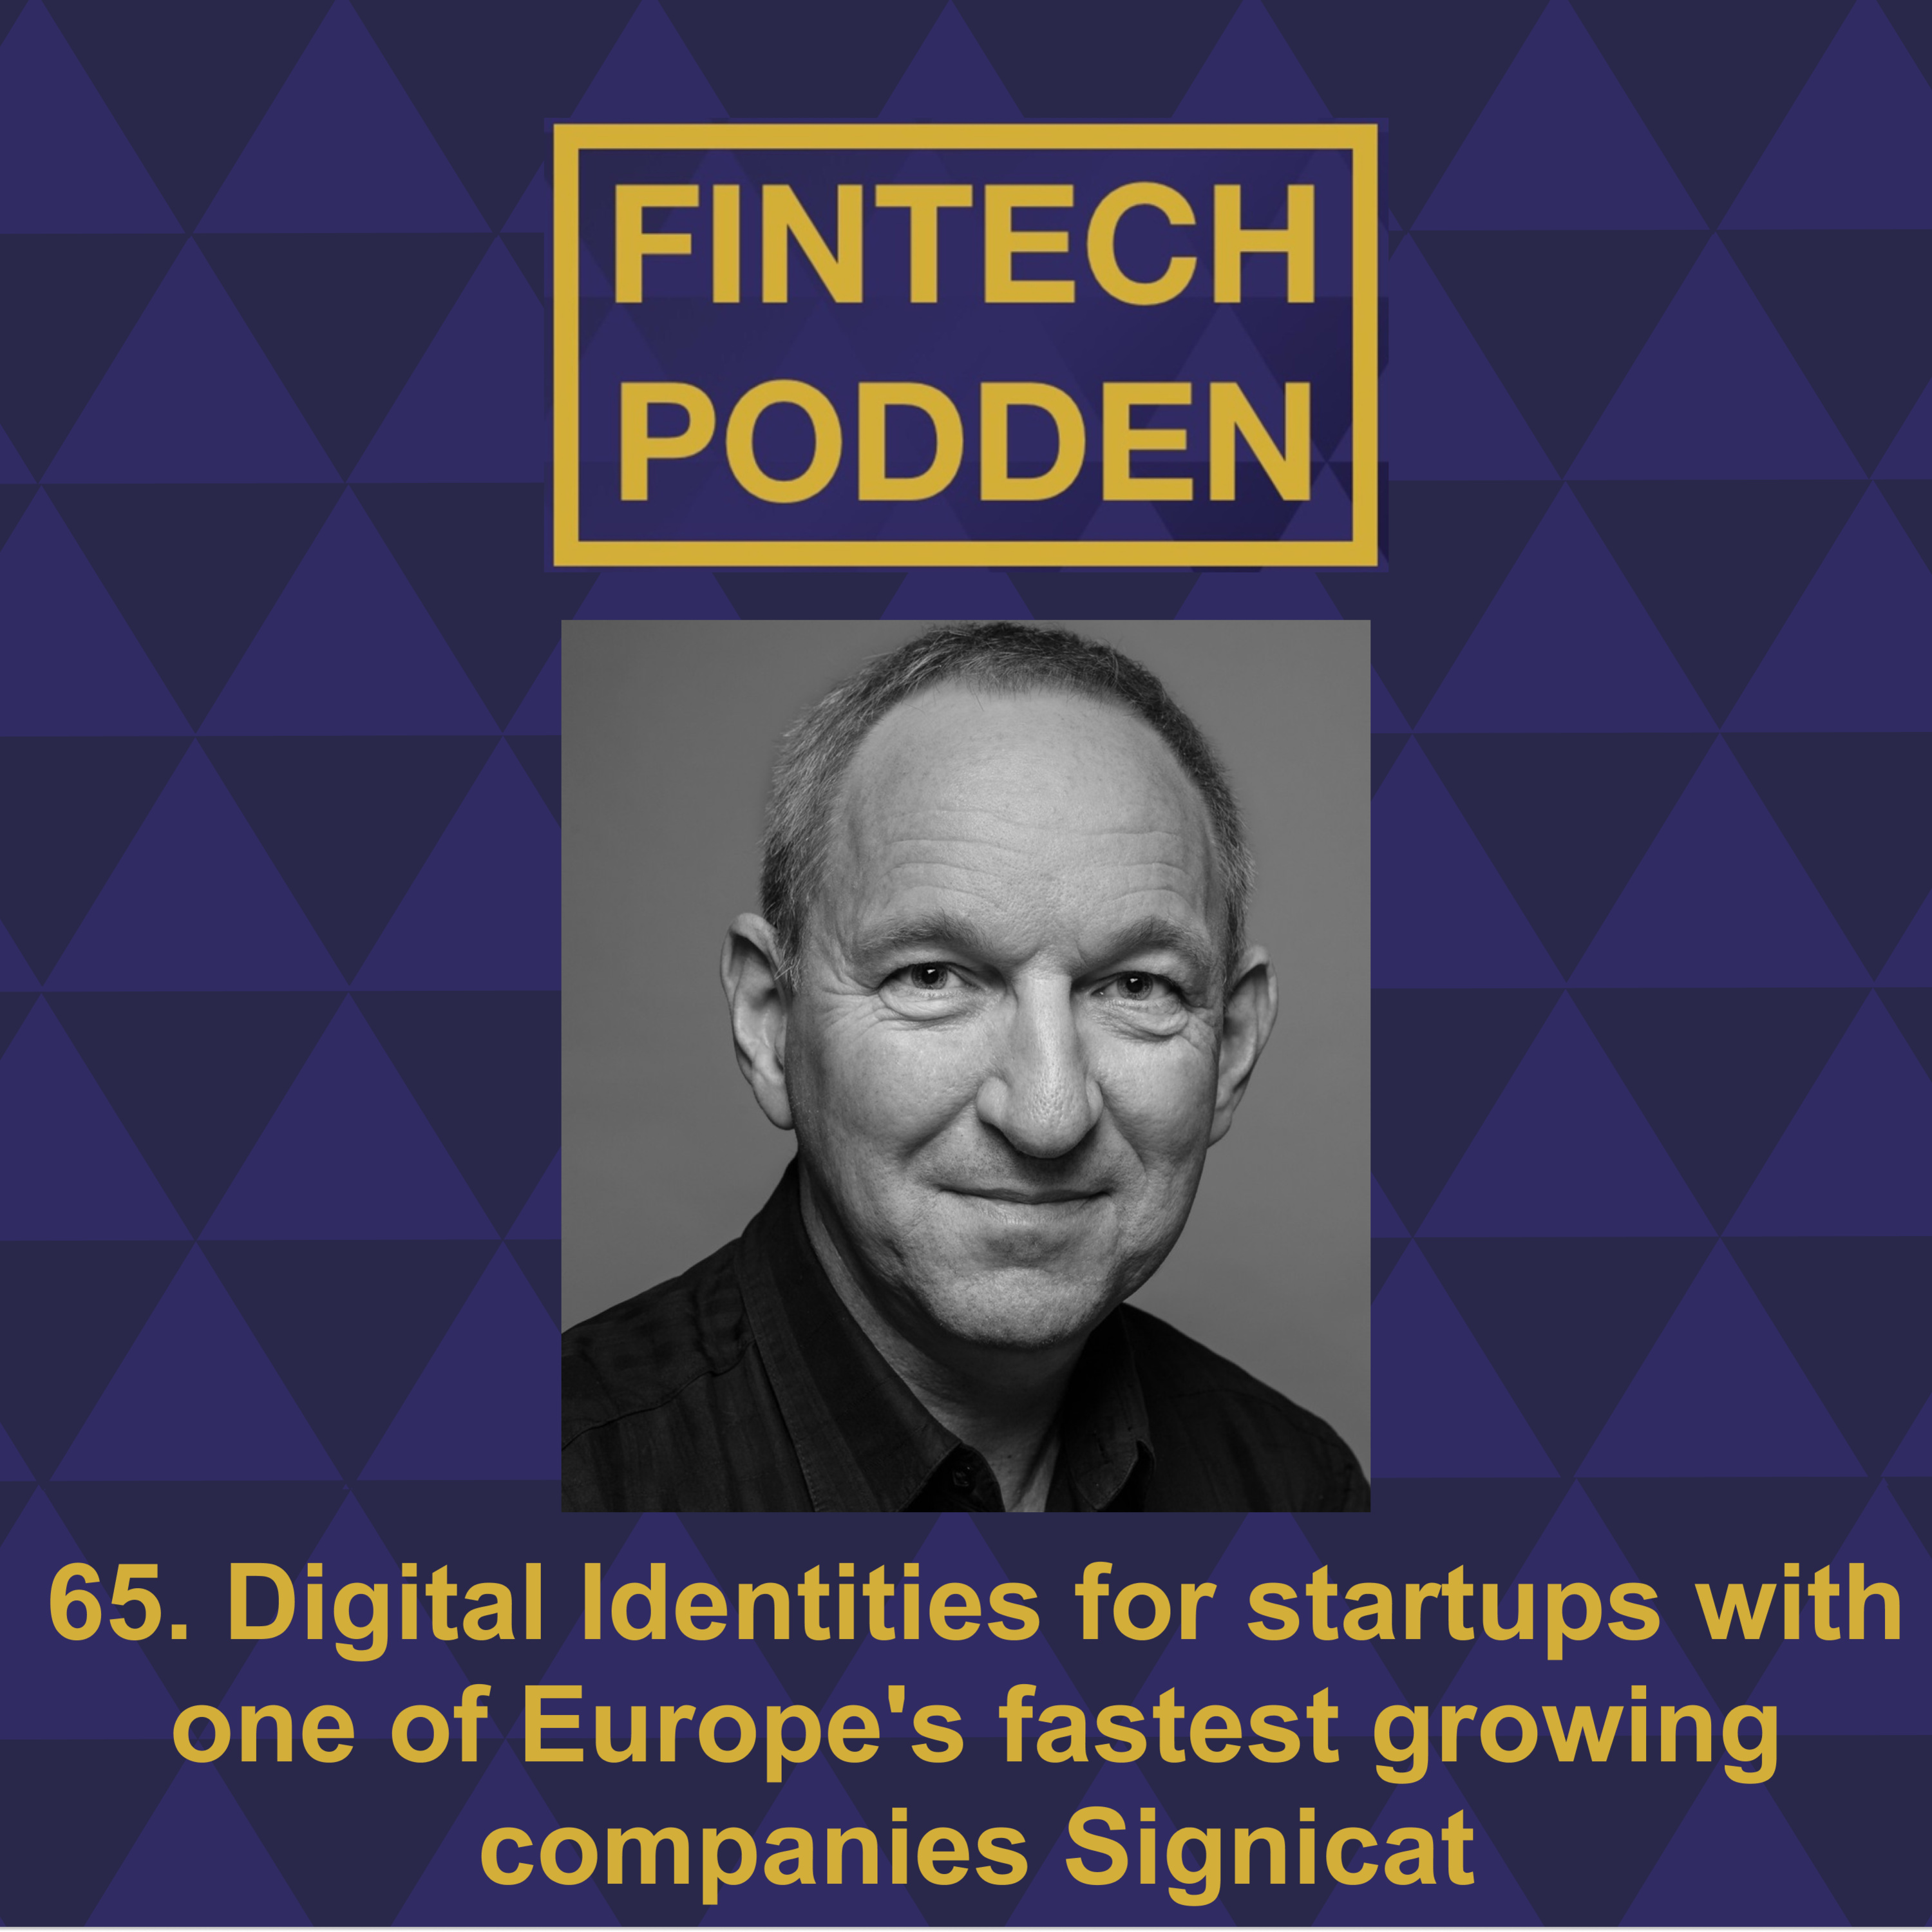 65. Digital Identities for startups with one of Europe's fastest growing companies Signicat